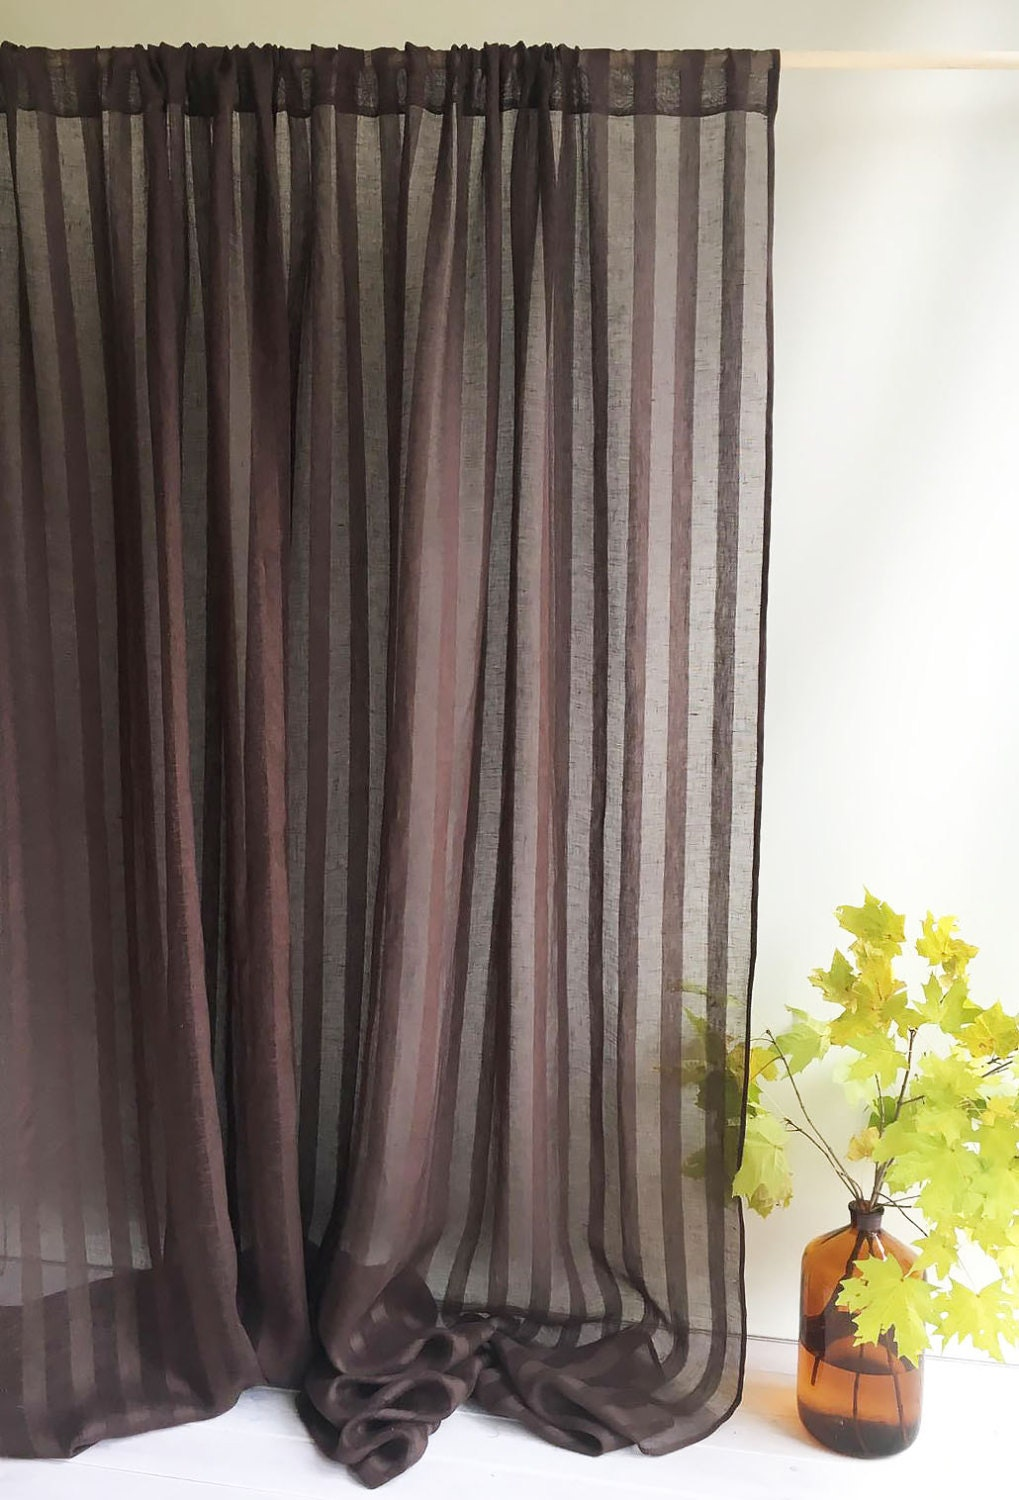 102 Wide Curtain Panel, Linen Curtain, Brown Curtains, Sheer Window Curtains  And Drapes, Chocolate Curtains For Living Room, Drapery